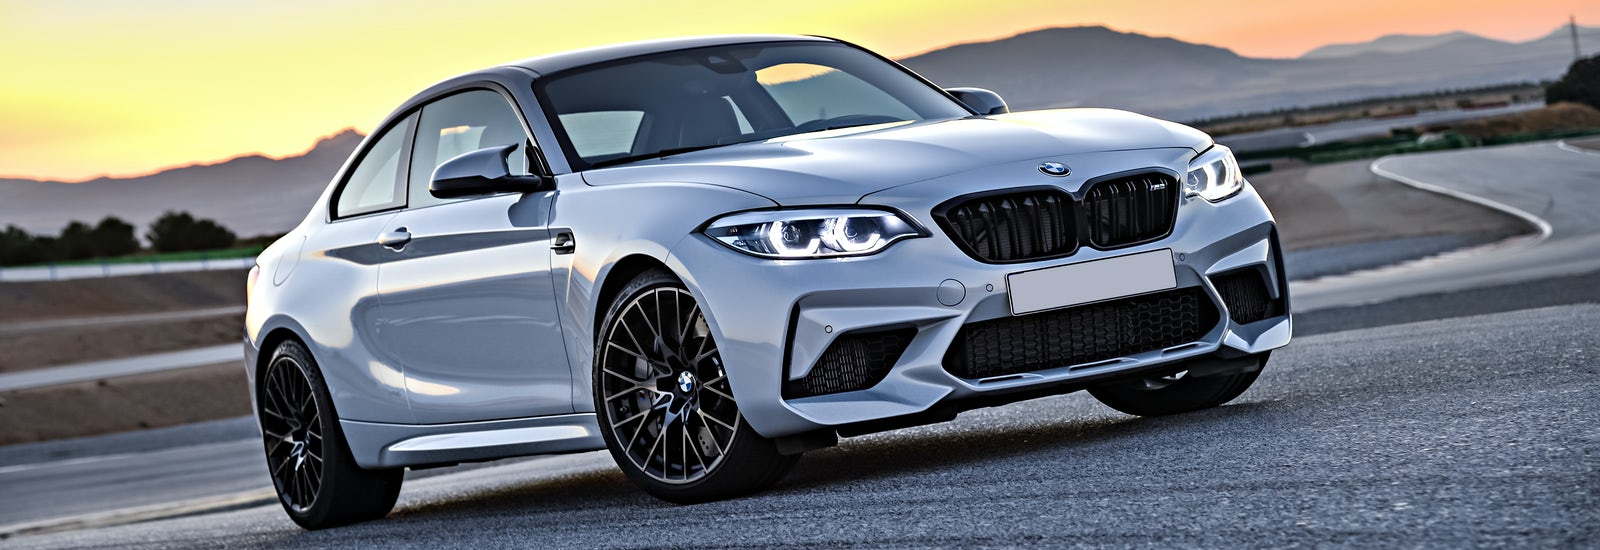 2018 bmw m2 competition price specs and release date carwow. Black Bedroom Furniture Sets. Home Design Ideas